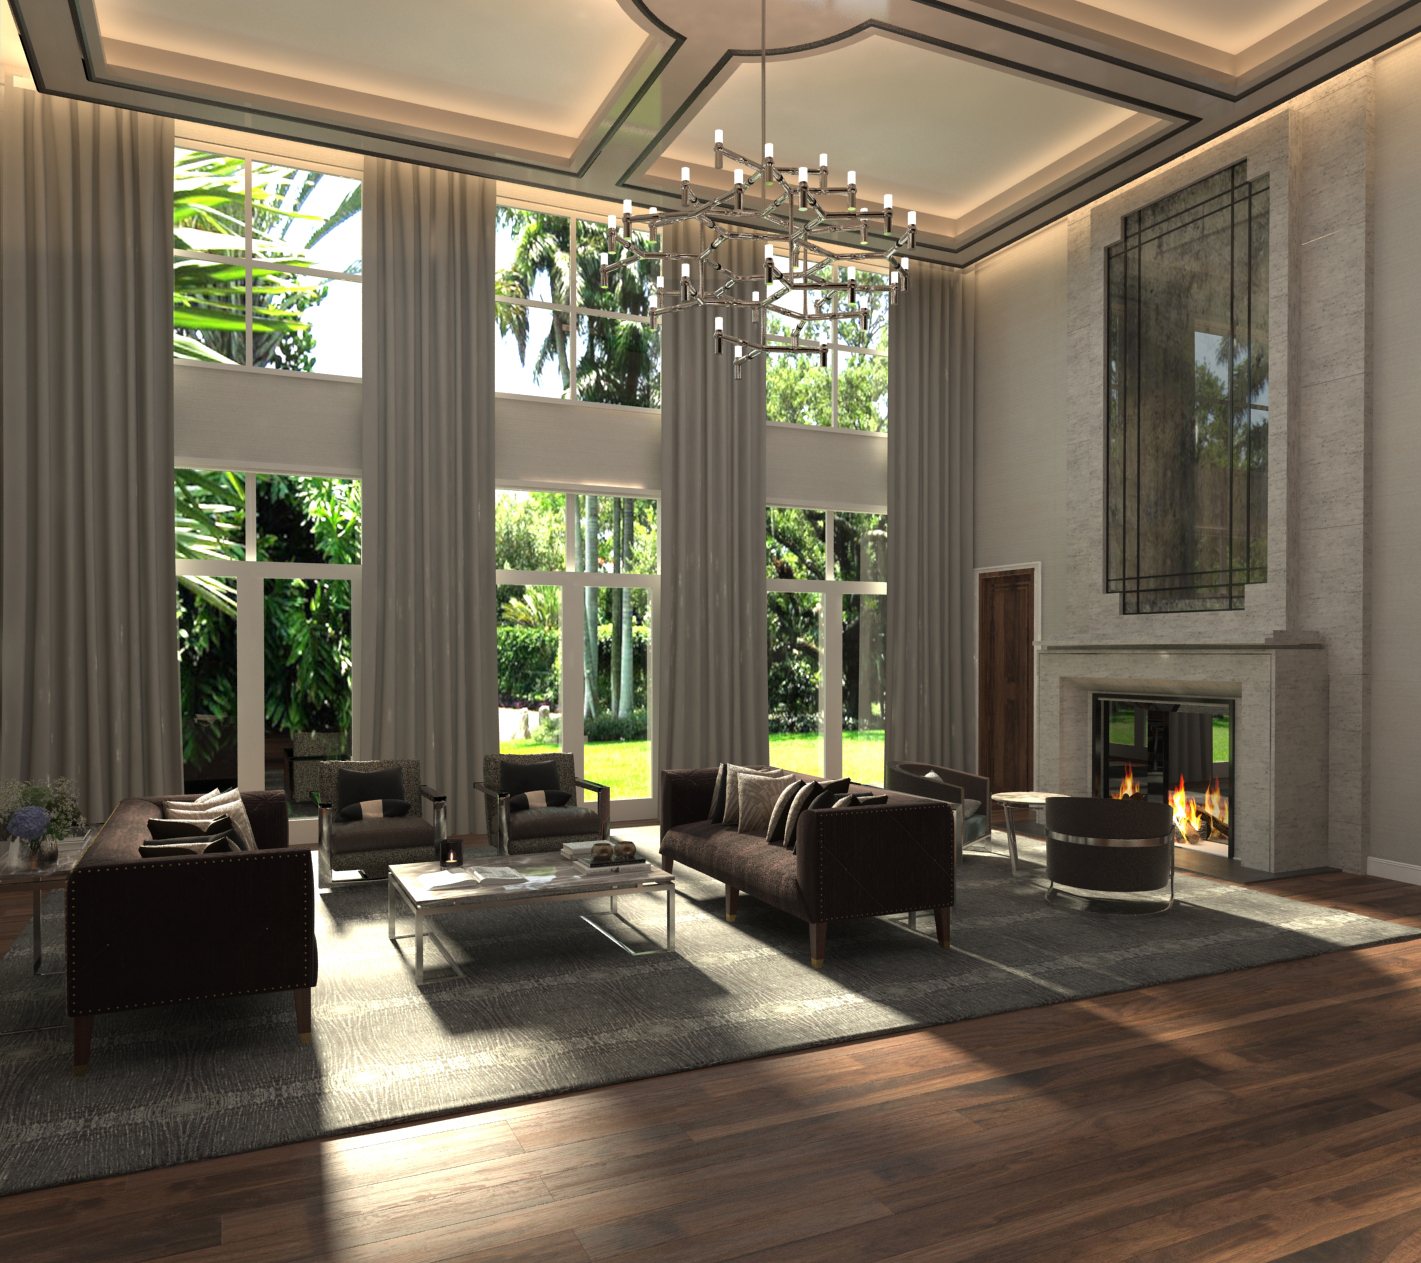 Home Susan Strauss Design Top NJ Interior Firm Residential Commercial